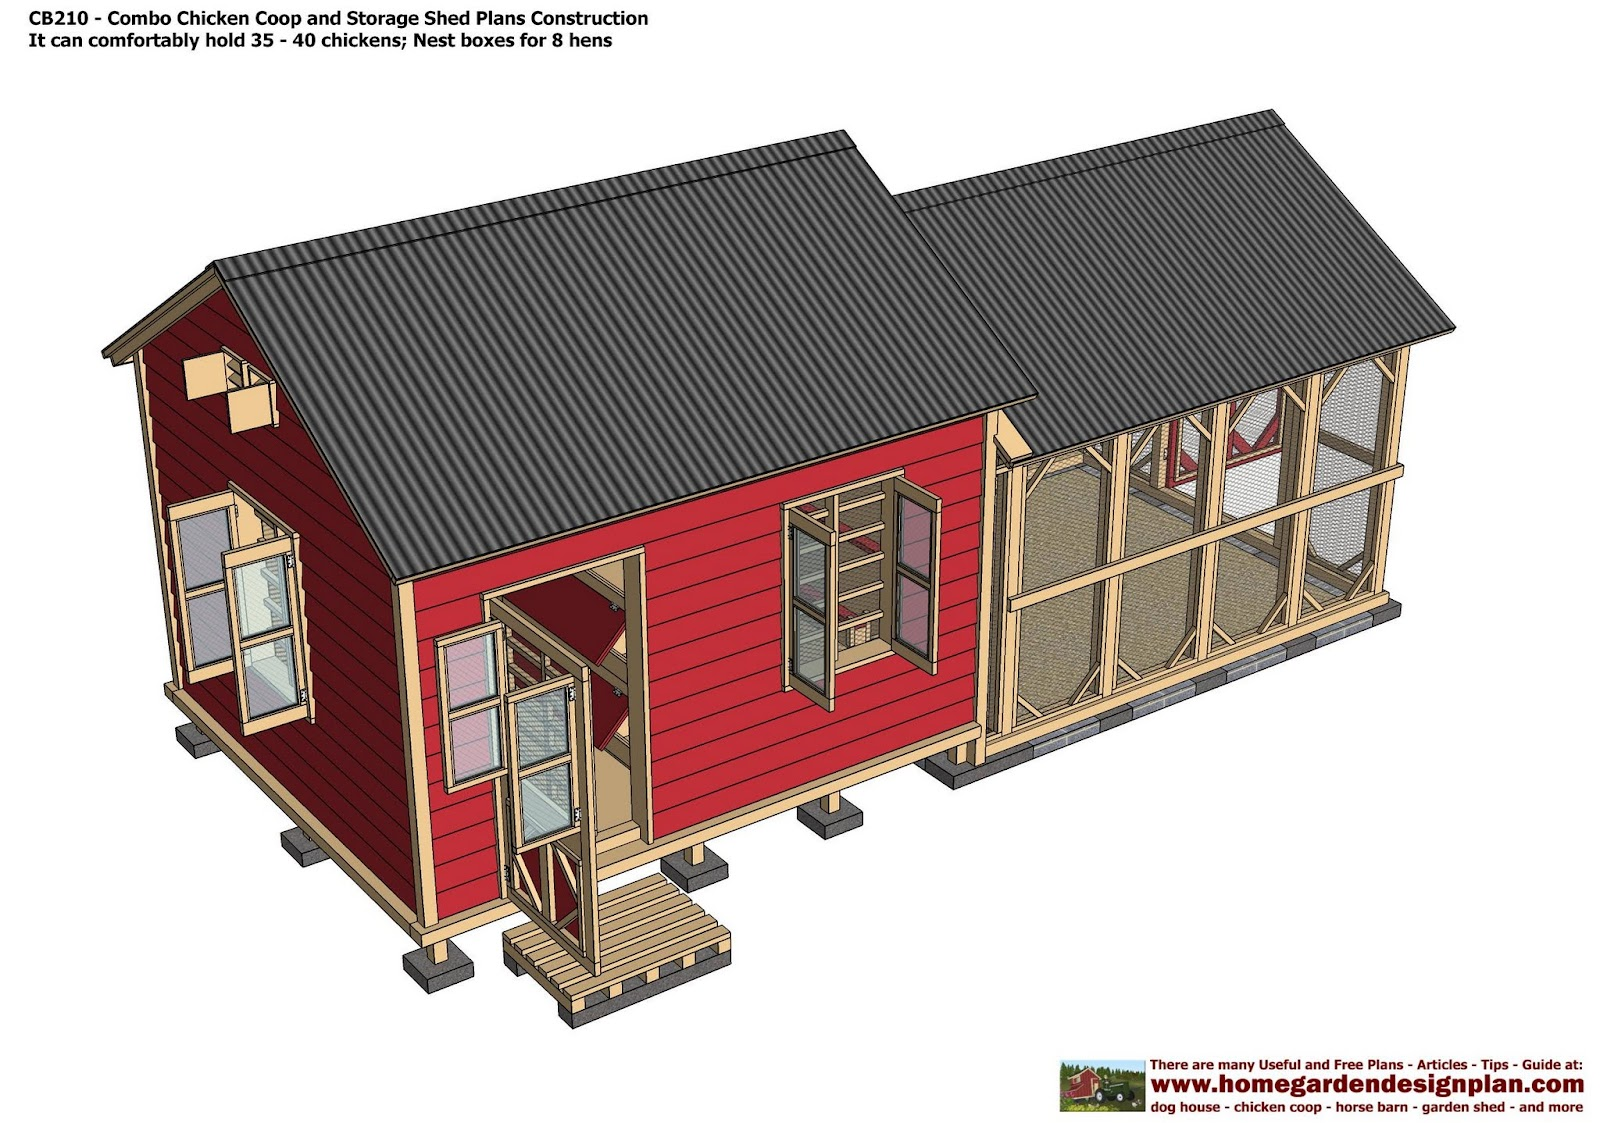 Home garden plans cb210 combo plans chicken coop for House barn combo plans